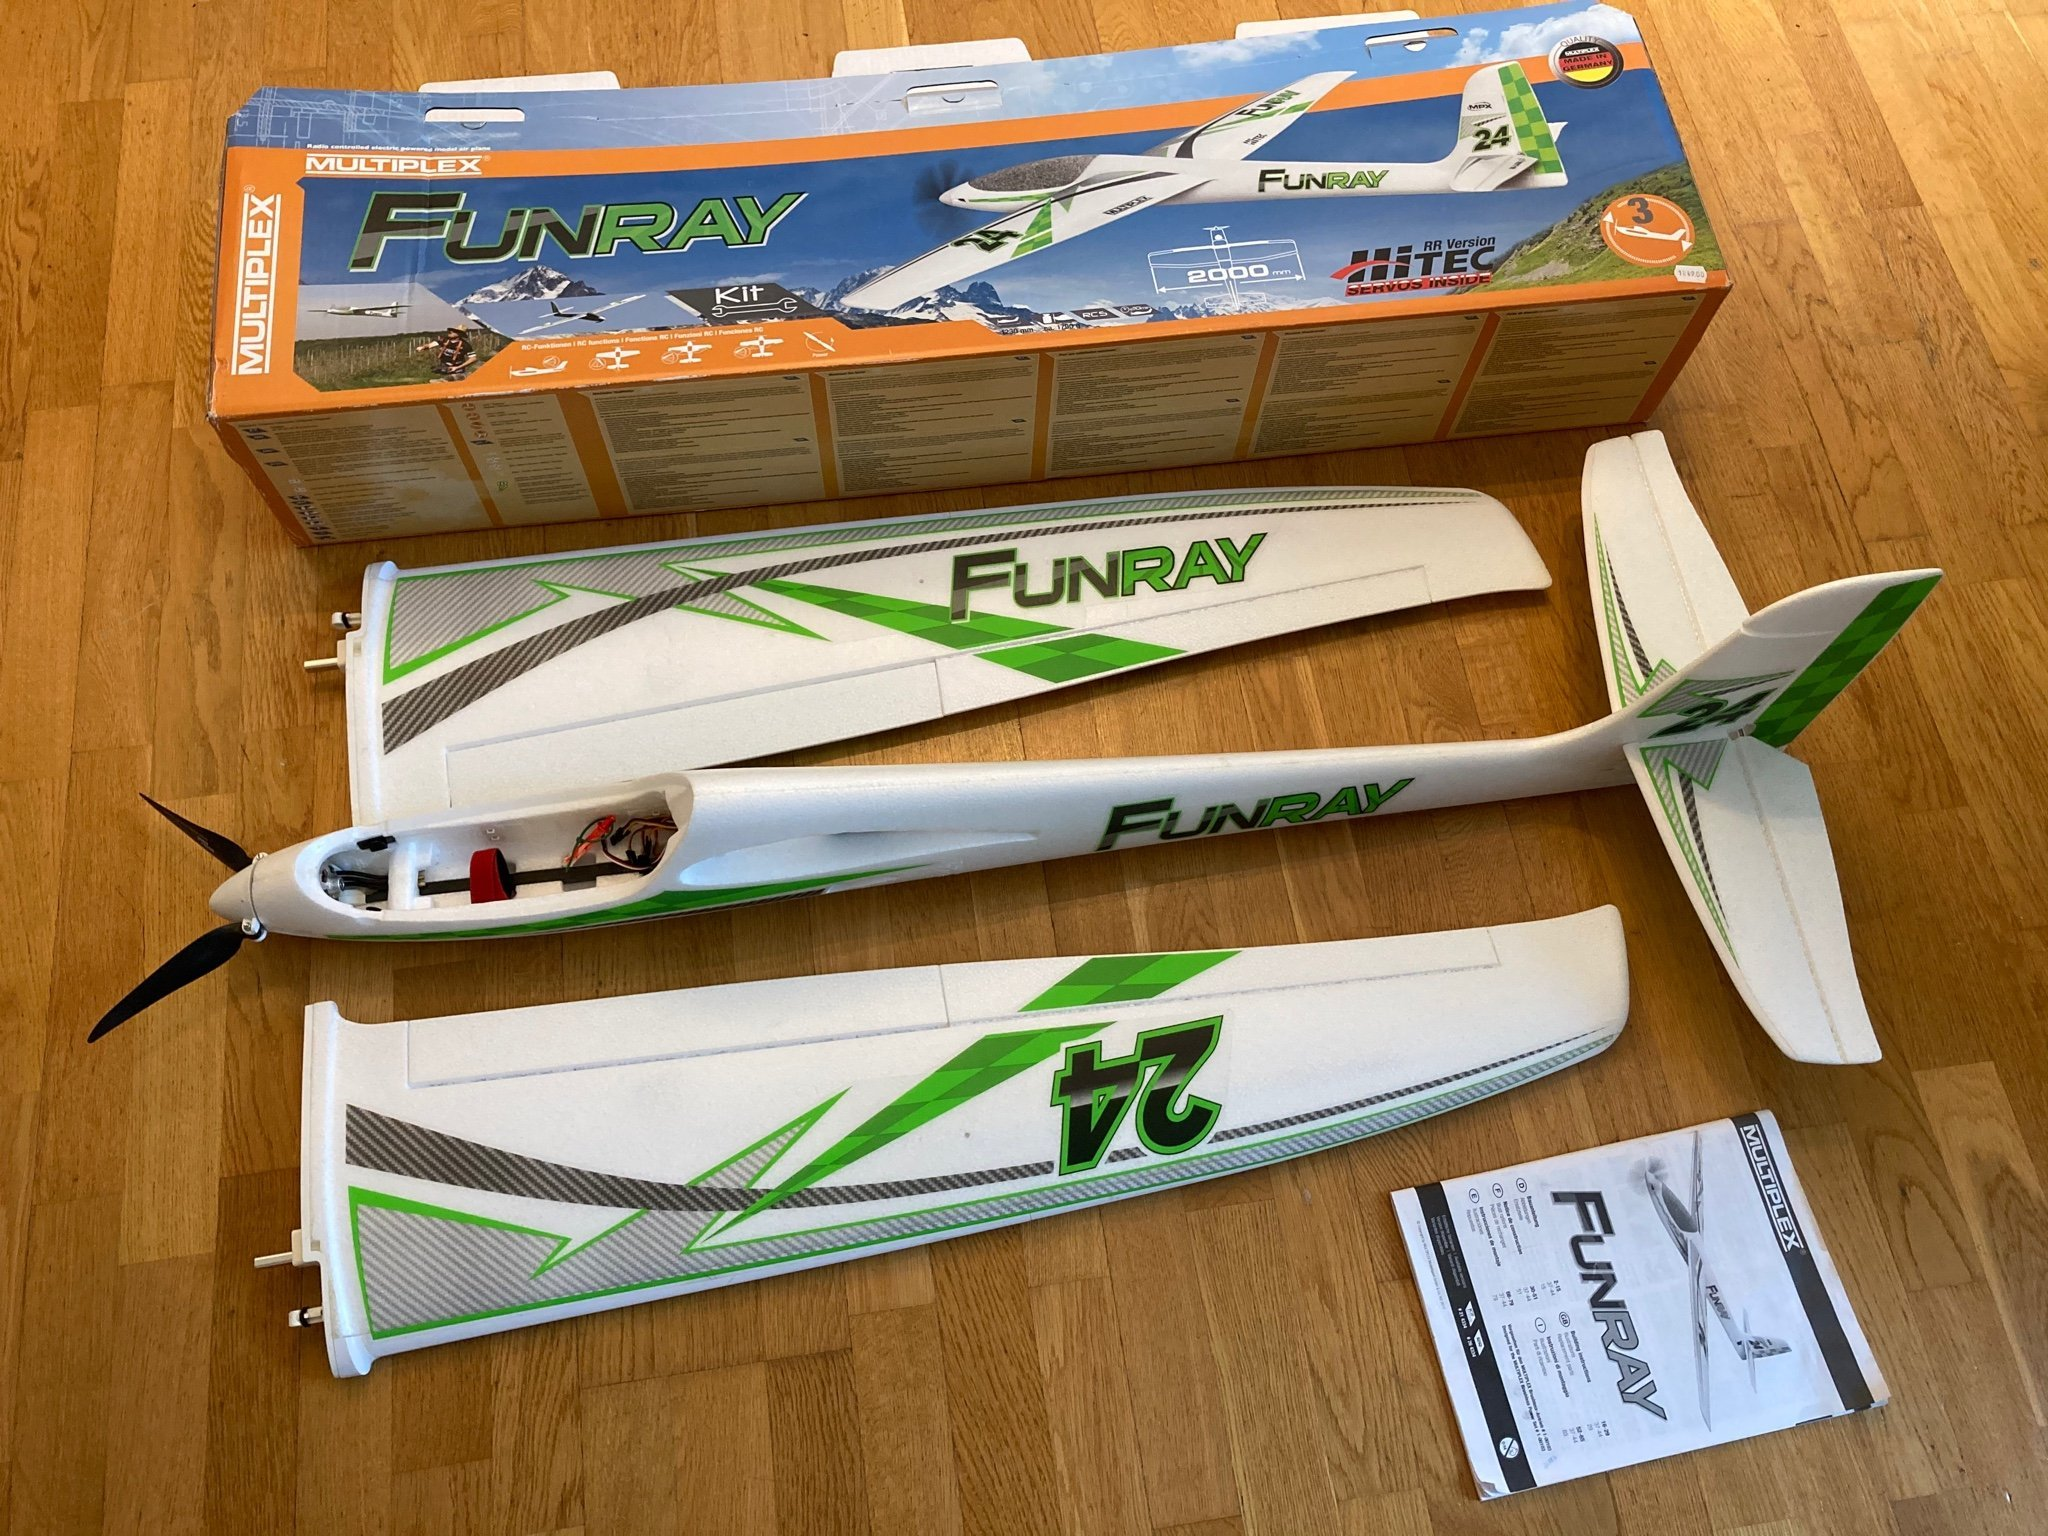 Multiplex FunRay RC flygplan elsegel